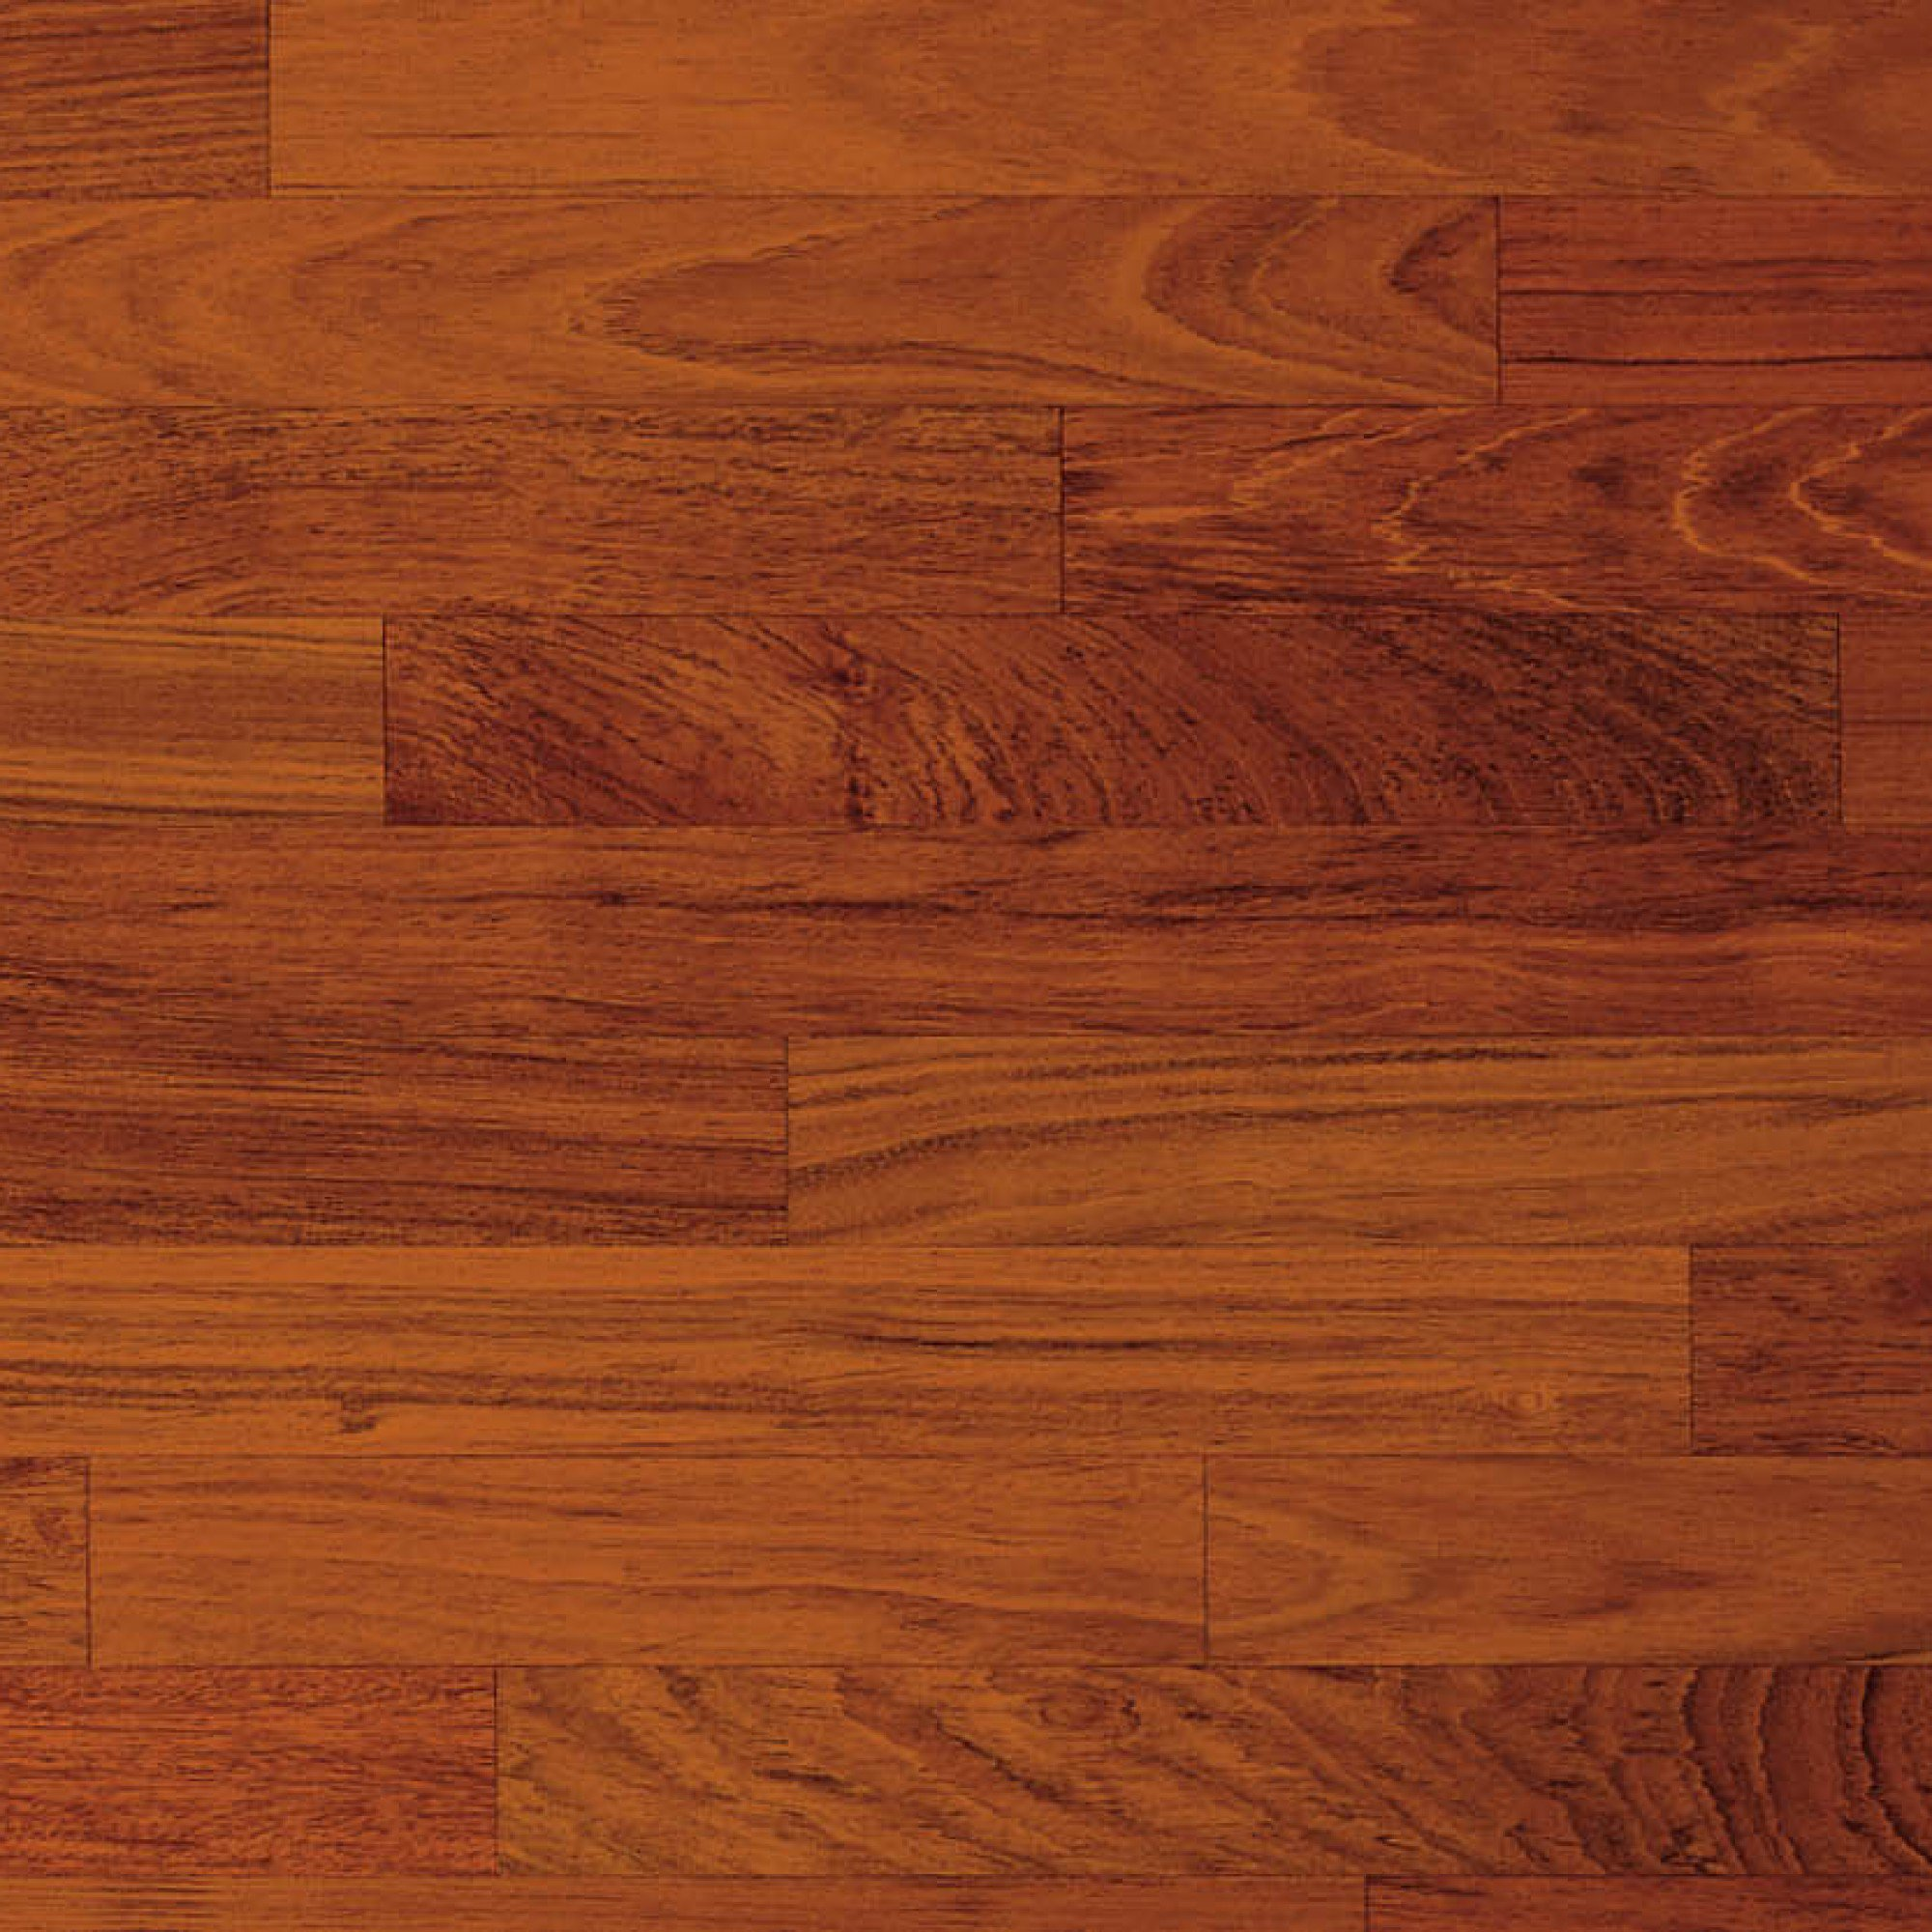 Exotic brazilian cherry mirage hardwood floors for Mirage wood floors